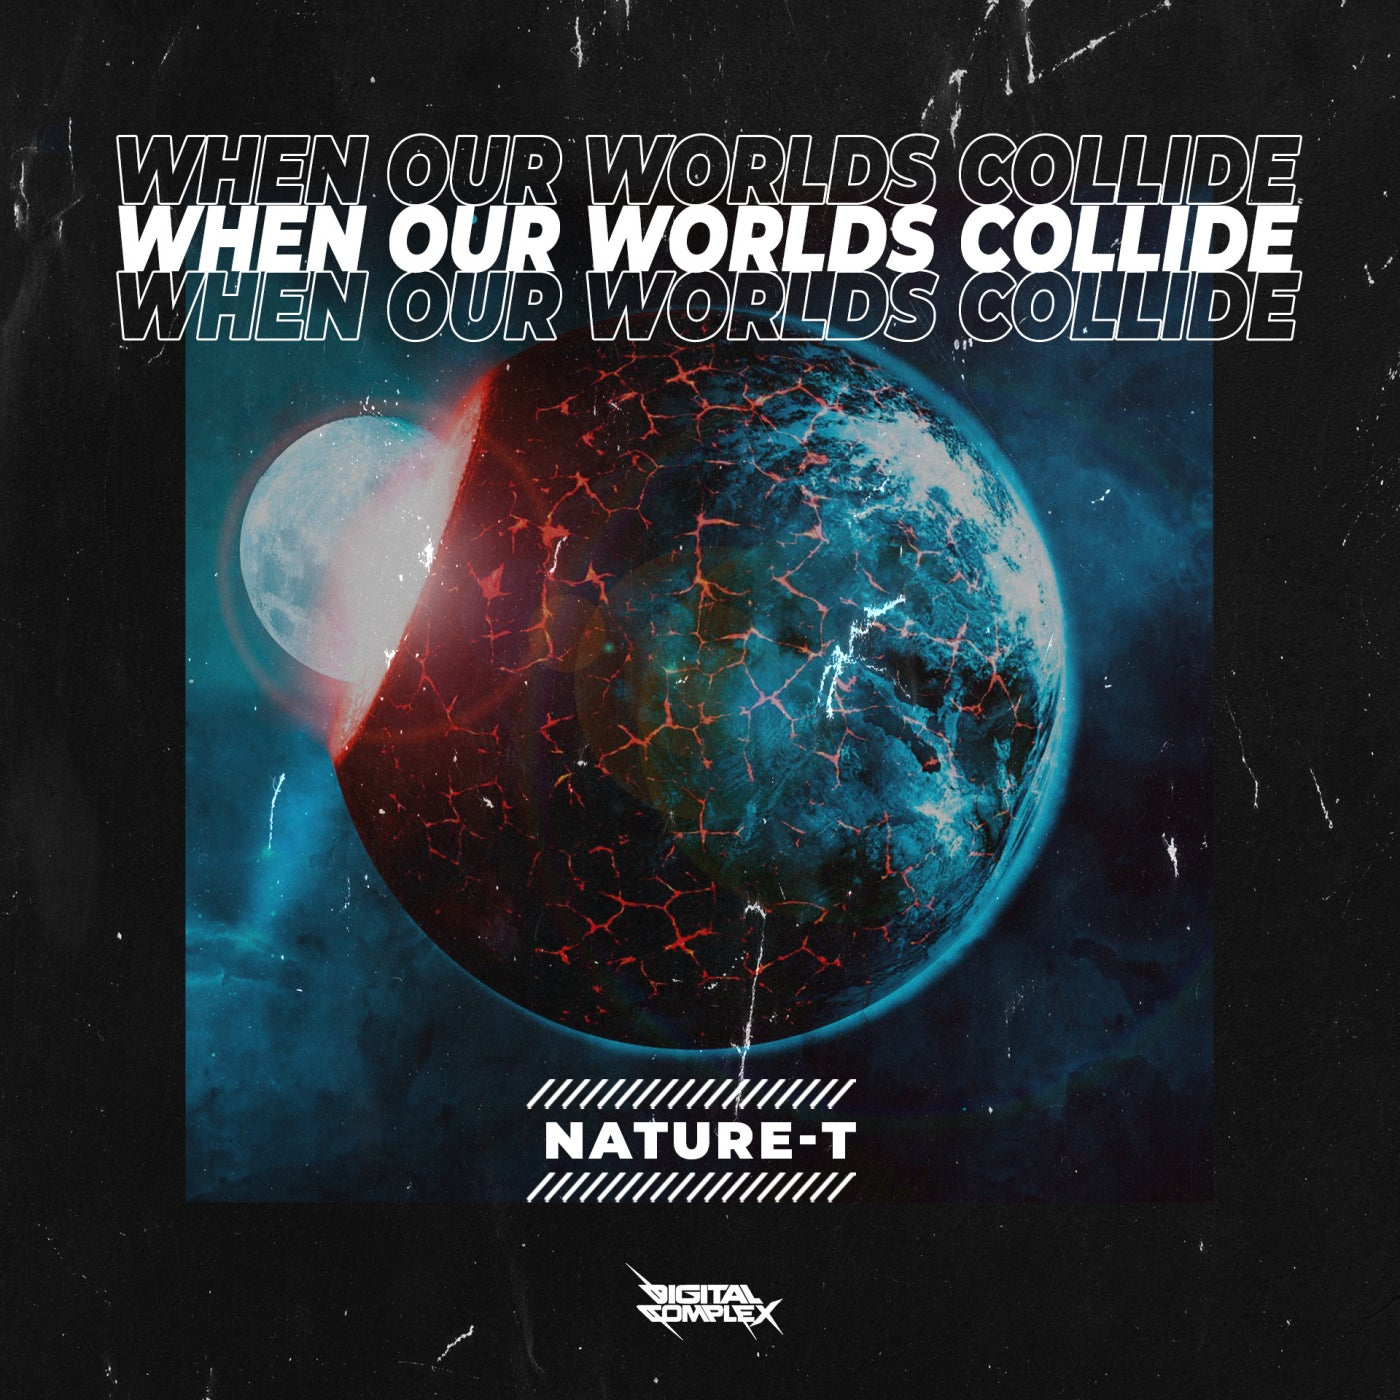 Nature-T - When our Worlds Collide [OUT NOW] Image